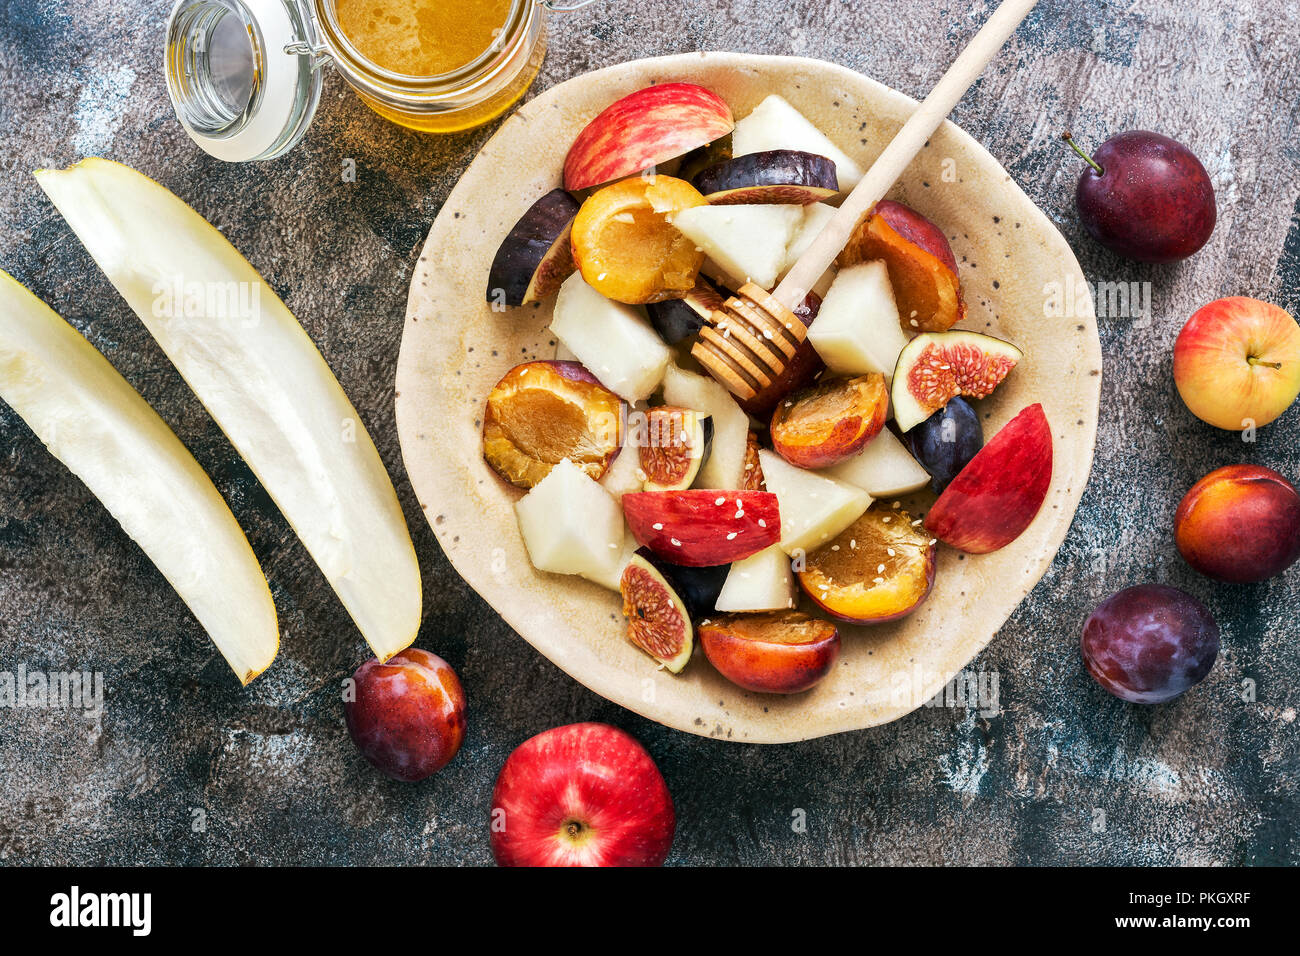 Fresh fruit salad of melon, figs, apples, plums and honey on a dark rustic background, top view. The concept of healthy eating. flat lay - Stock Image